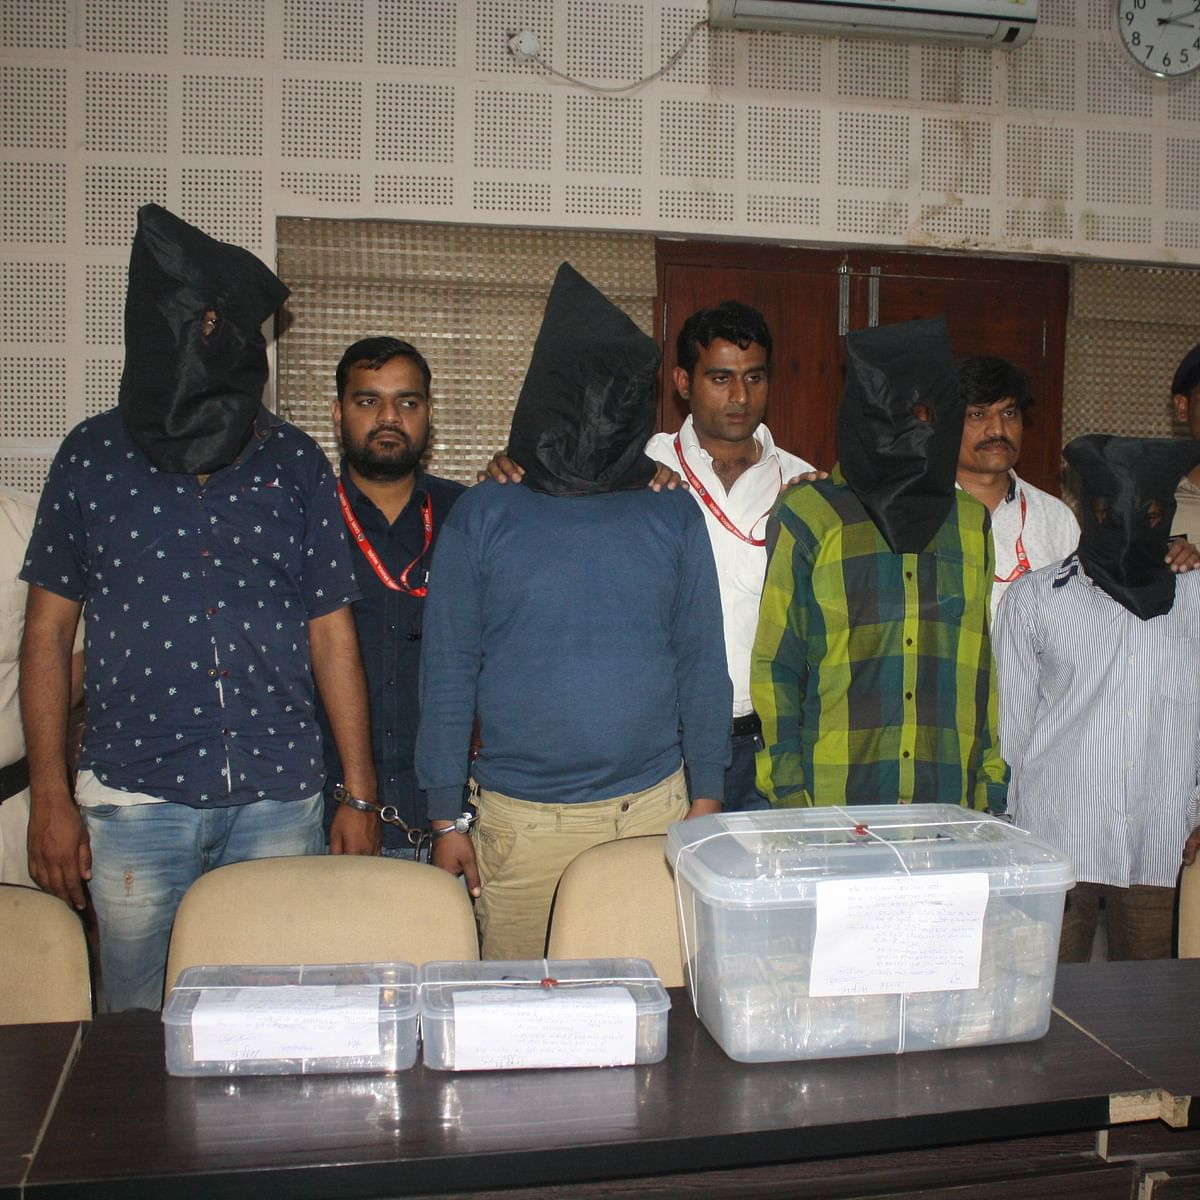 Indore: Bullion trader's employee, 3 others arrested for faking robbery